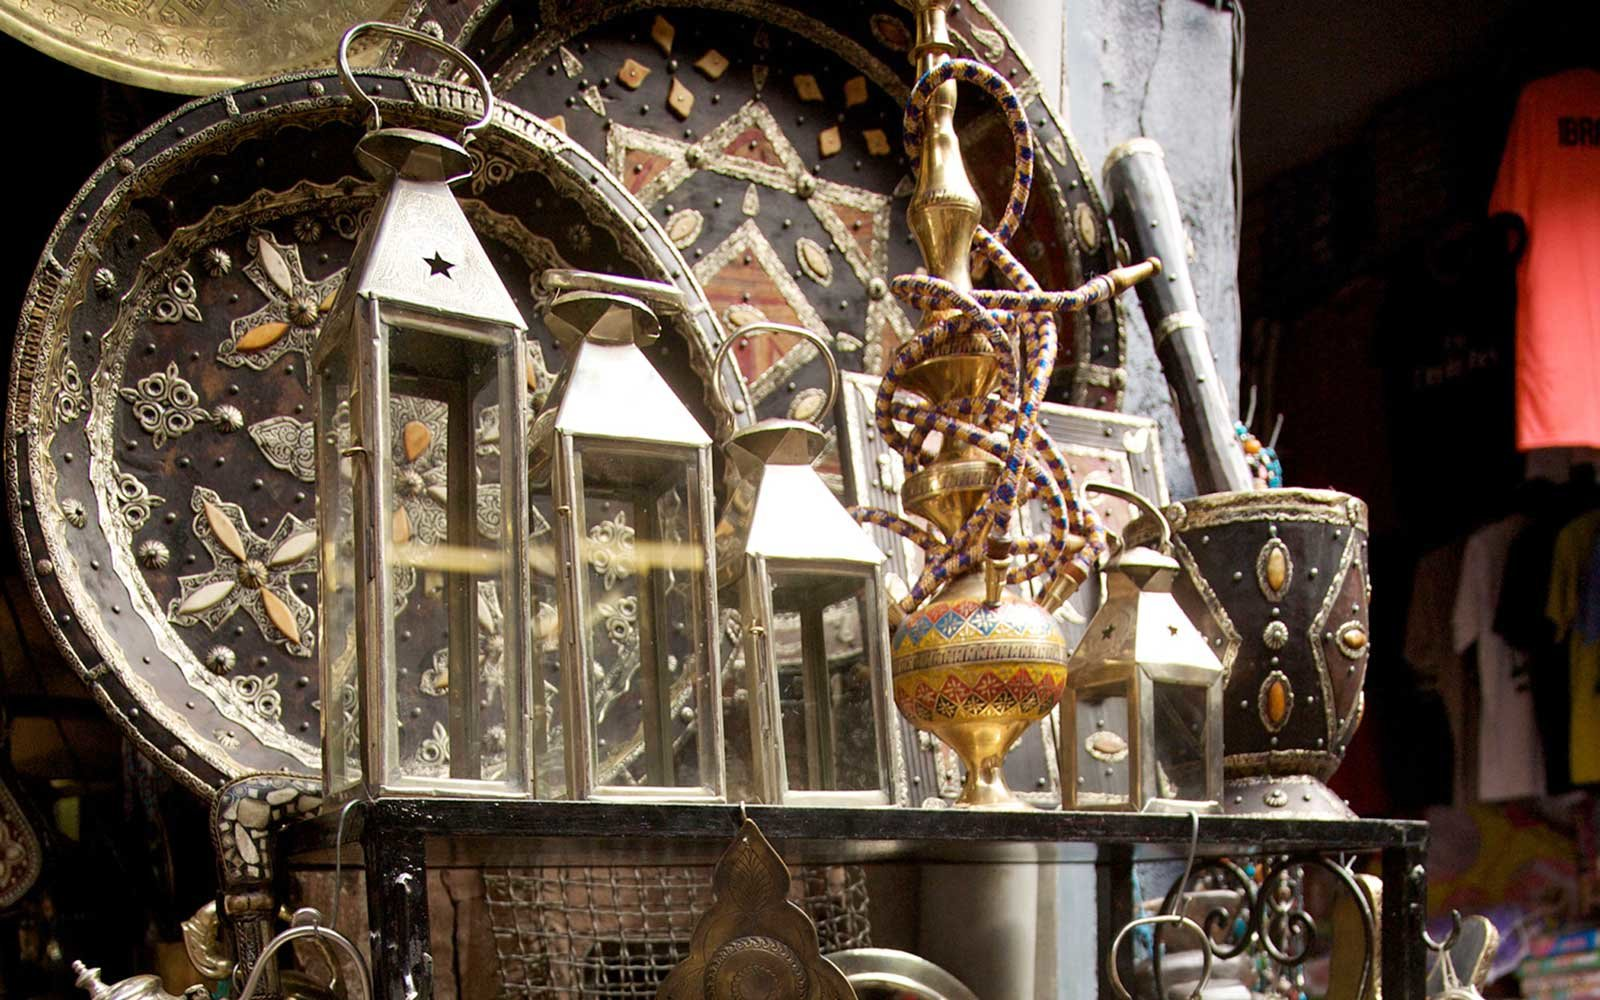 Goods on display at Porte d'Orient, in Marrakech